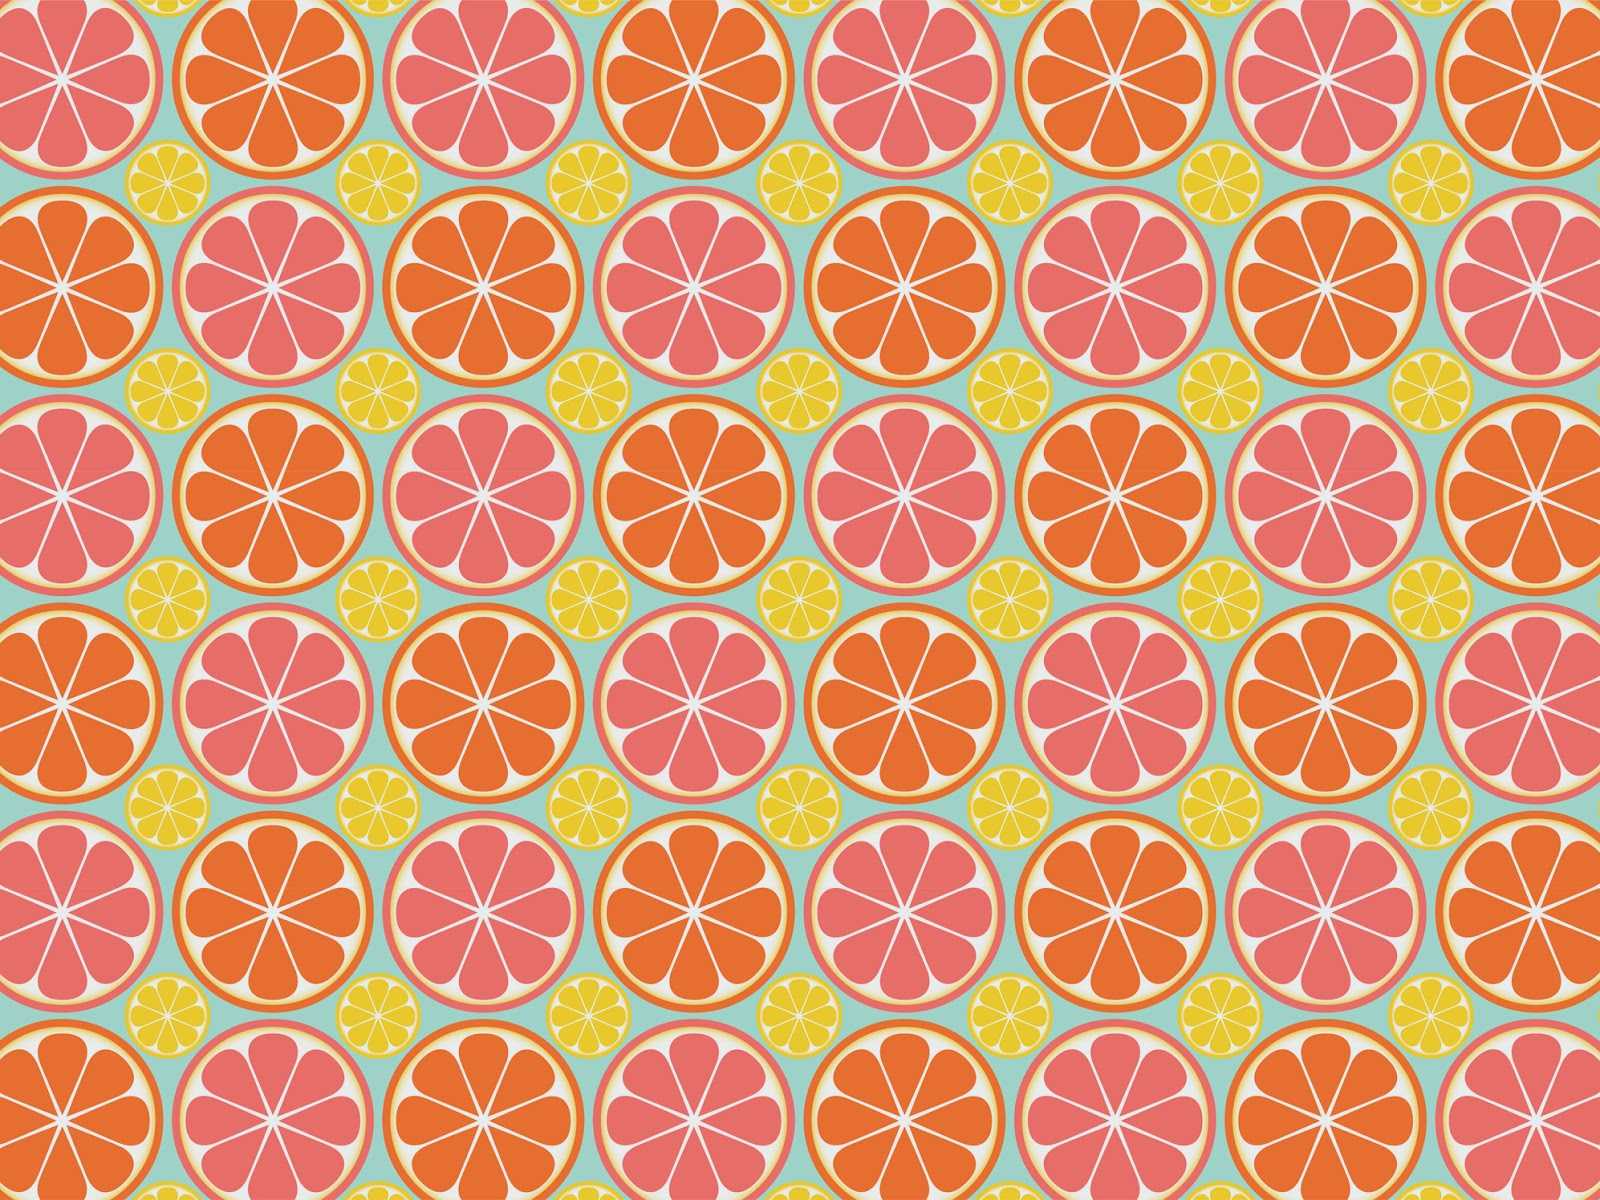 citrus-fruit-desktop-background, citrus-fruit-background